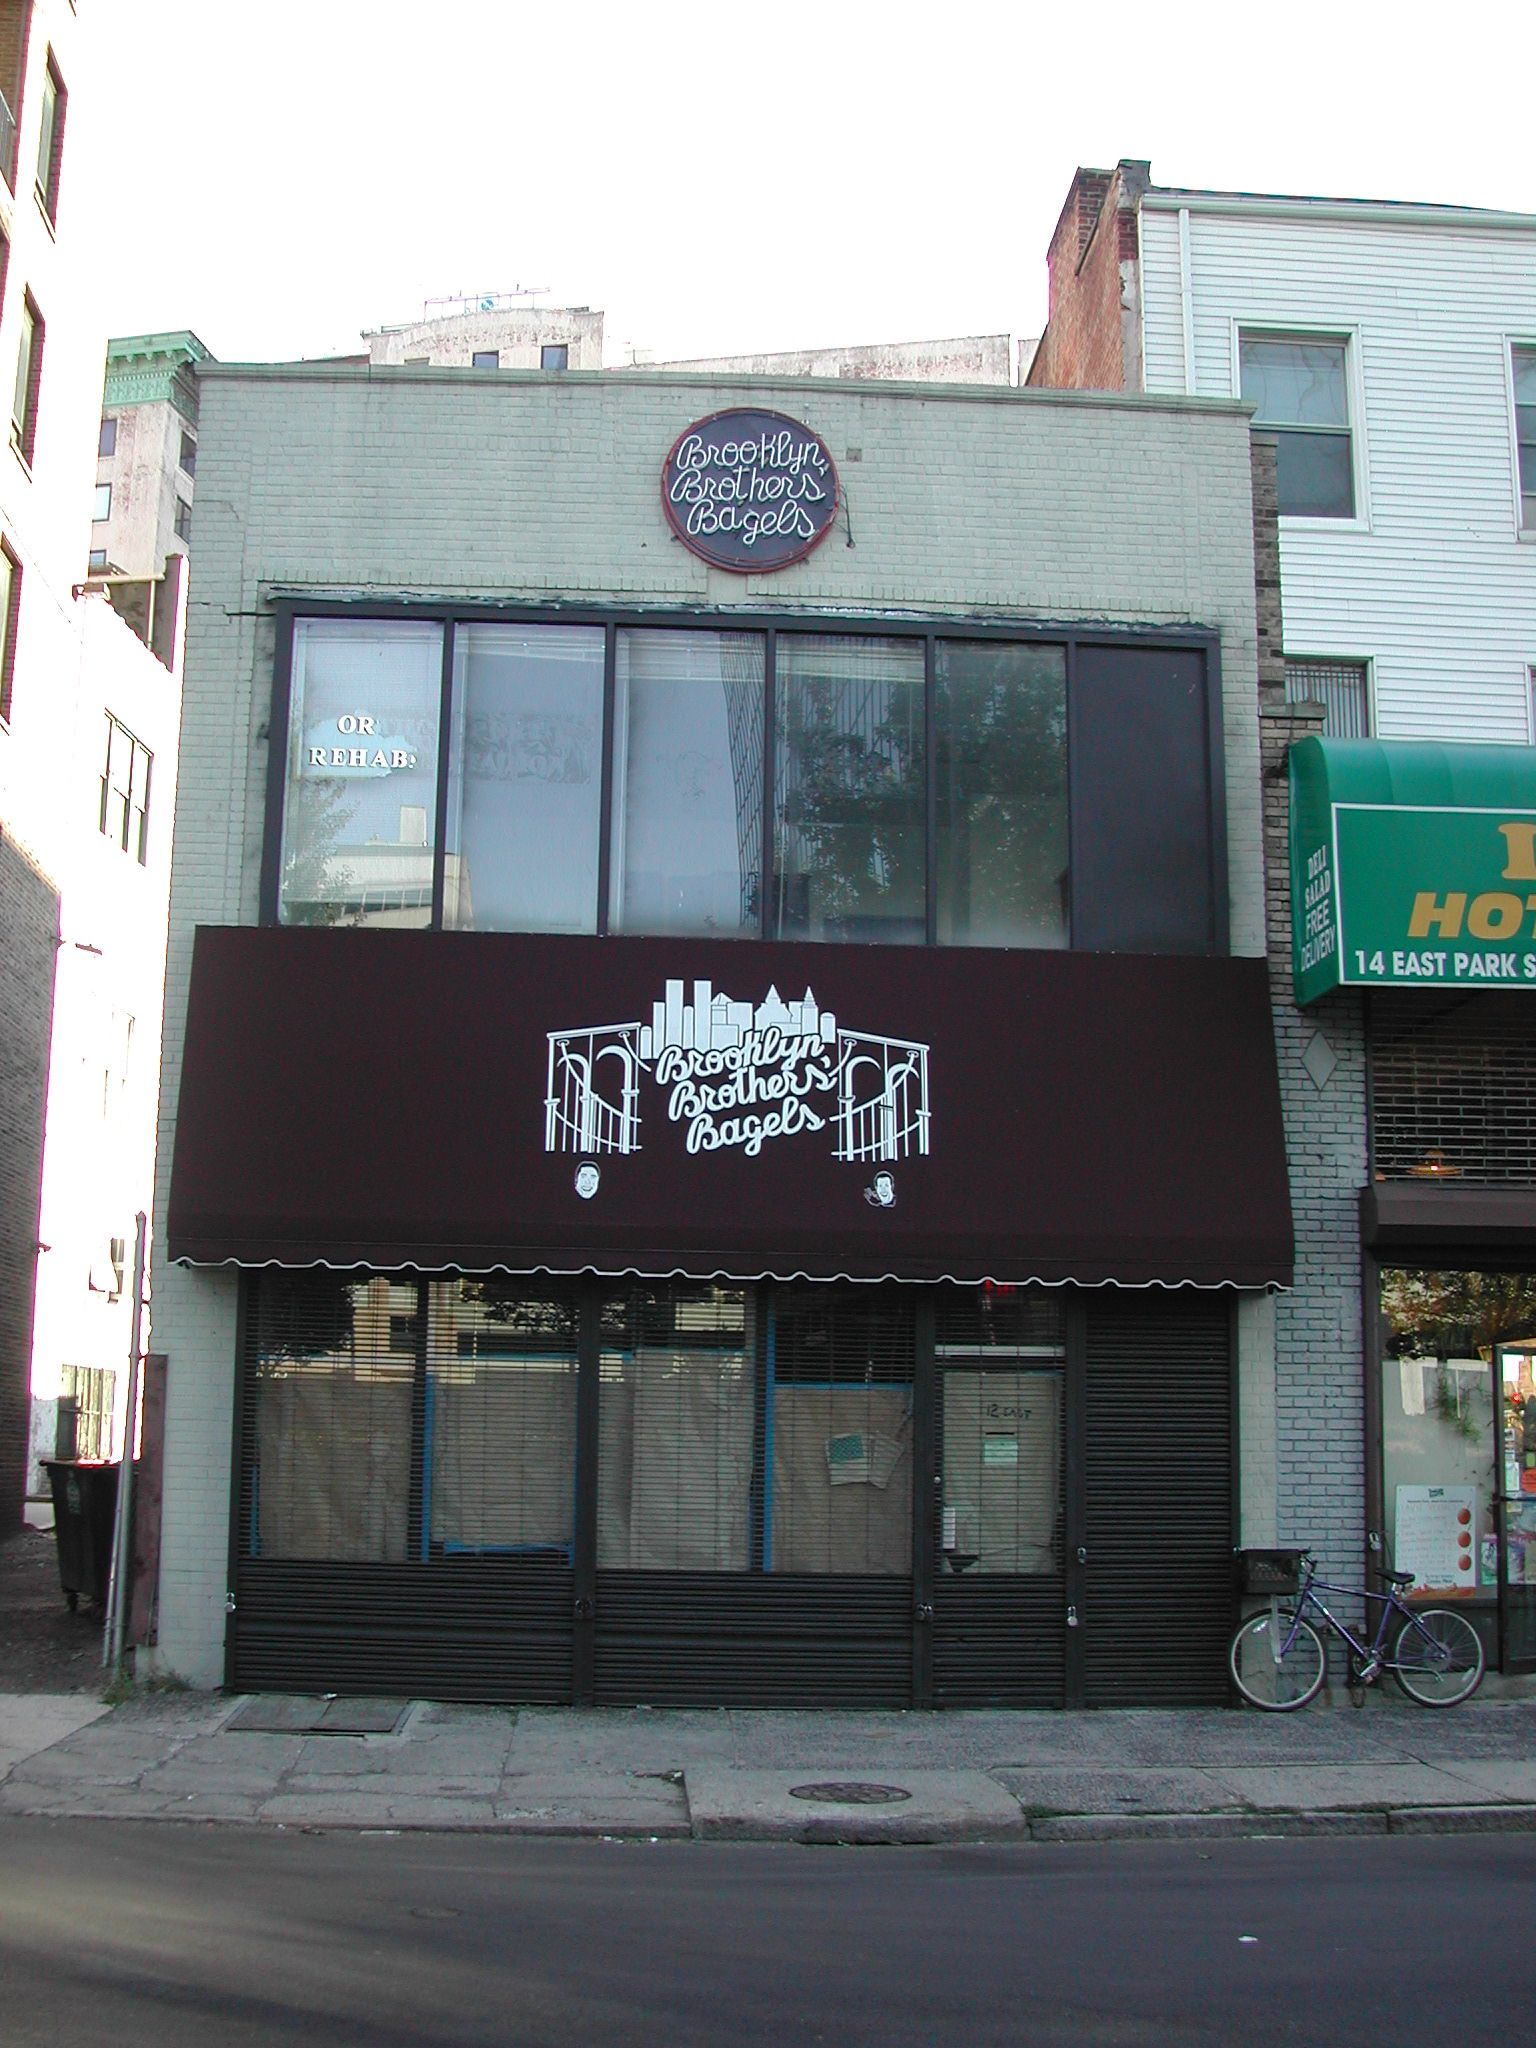 The death of the dutch schultz what the palace chop house looked like in 2004